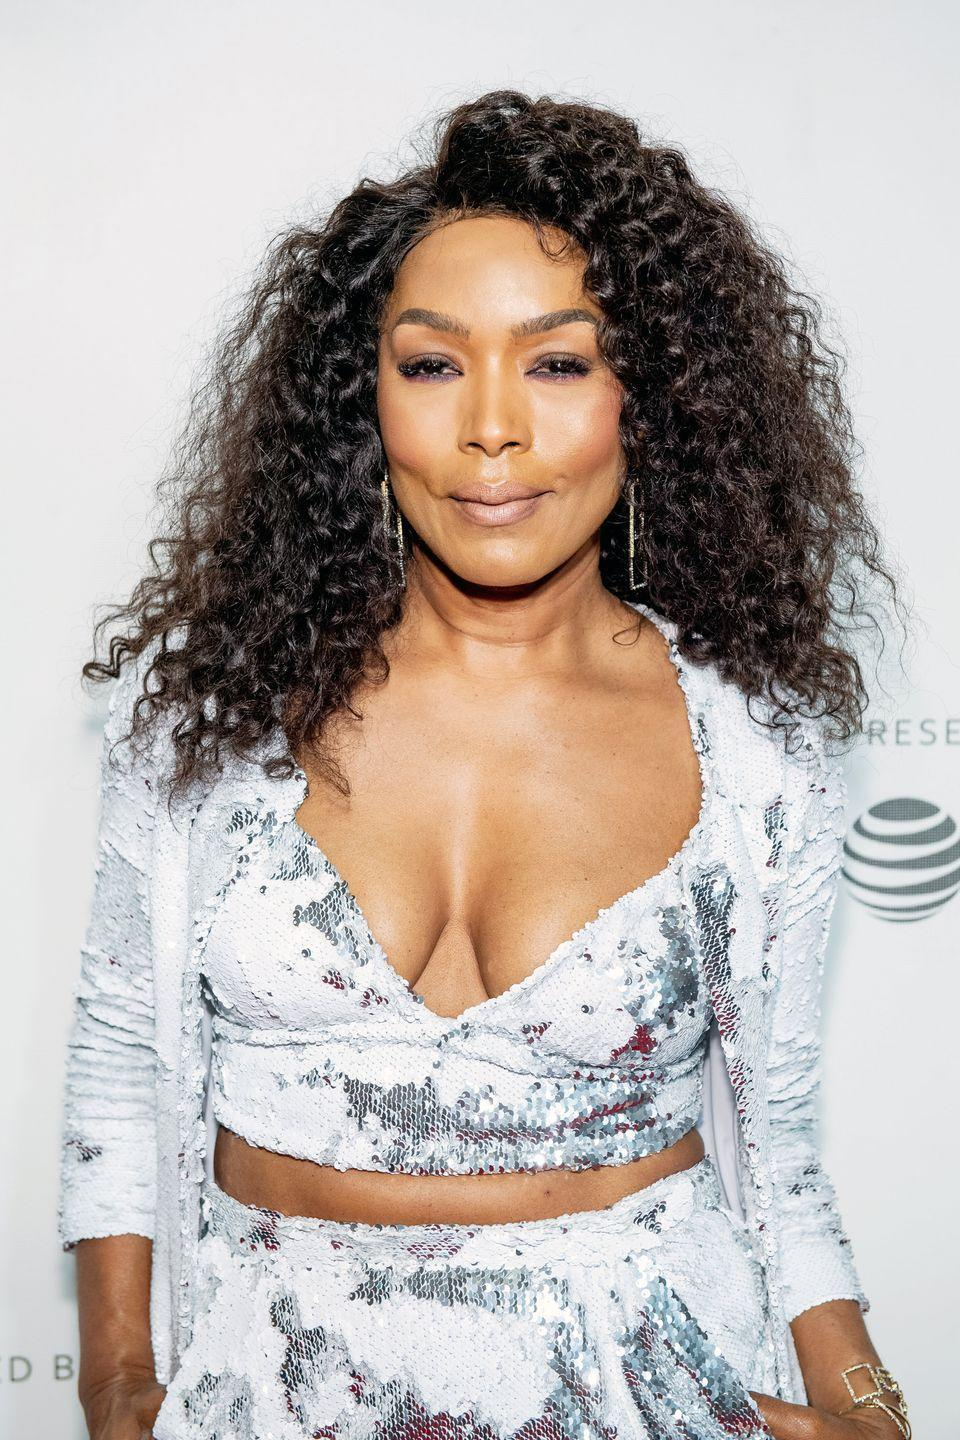 """<p>For hair like <strong>Angela Bassett</strong>'s, ask for a clear shine glaze or lowlights with a deep brown undertone. At home, try a """"gloss"""" treatment and add depth by painting on thin lowlights a shade darker than your base or look for a color like """"caramel"""" or """"chestnut."""" </p>"""